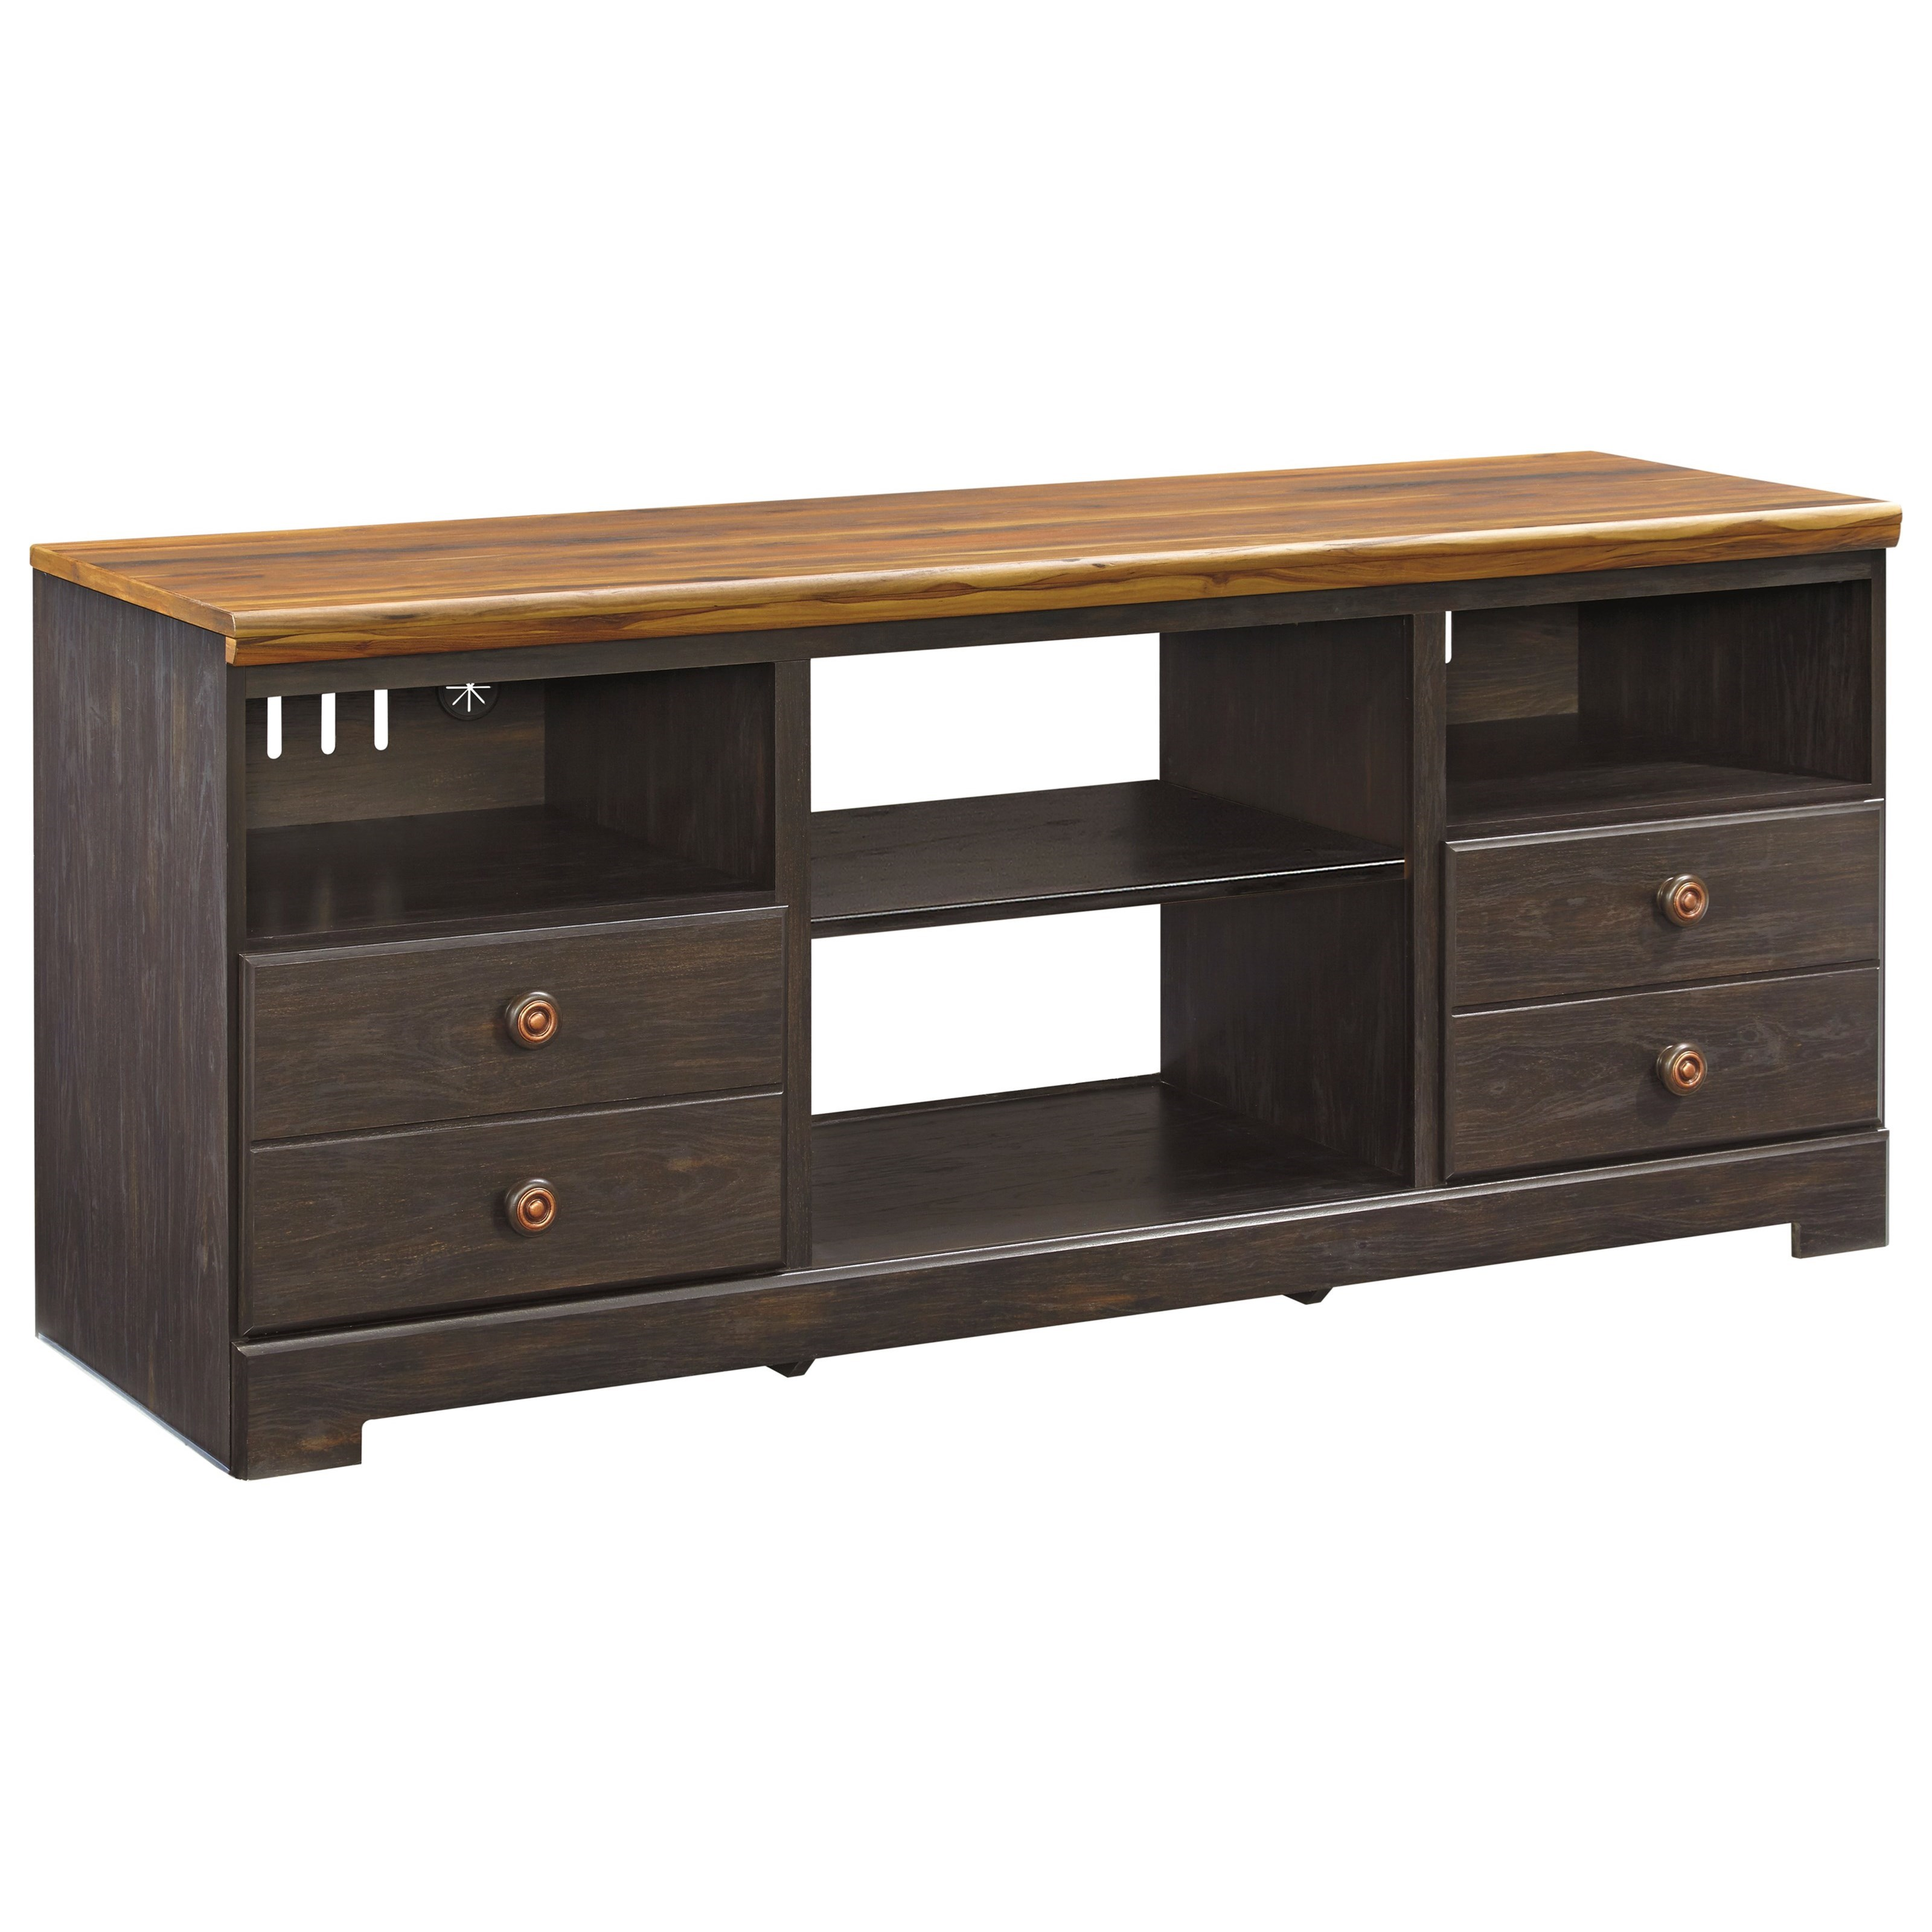 Signature Design by Ashley Maxington Large TV Stand - Item Number: W220-68